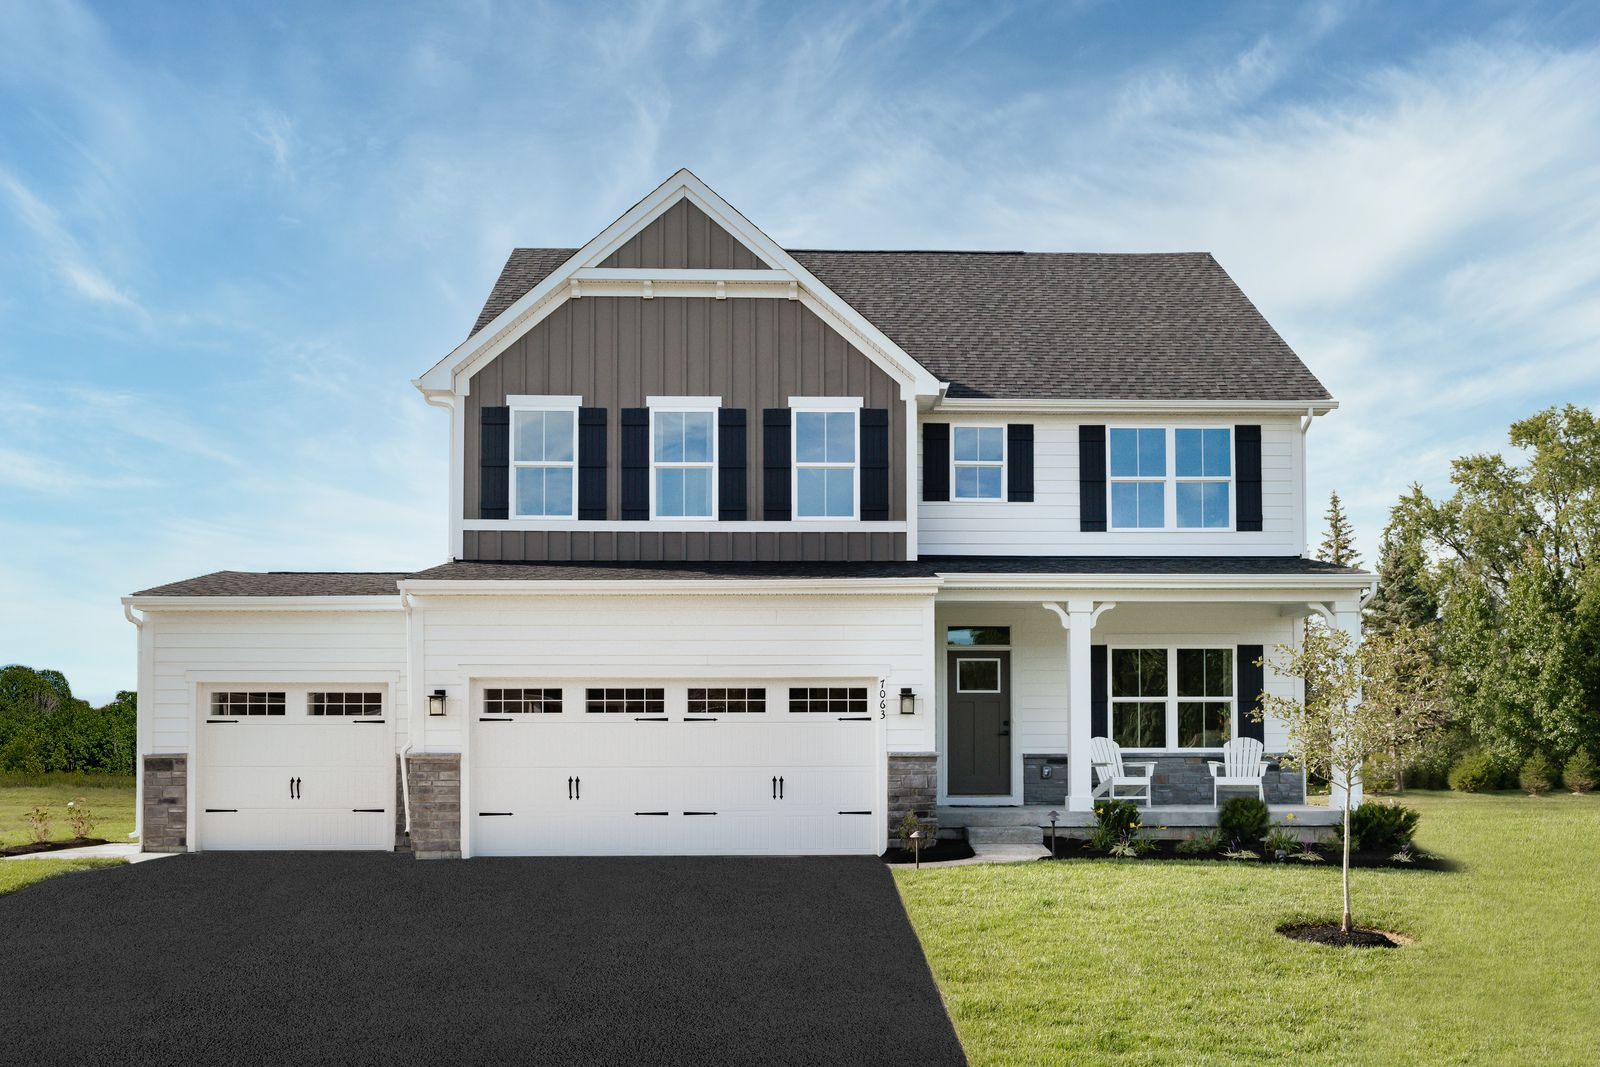 Our last home is ready for move-in and has a 3-car garage!:Come be a part of this special community! We have only one home left and it's ready now. We are open by appointment only.Schedule your private tour today--you don't want to miss this!